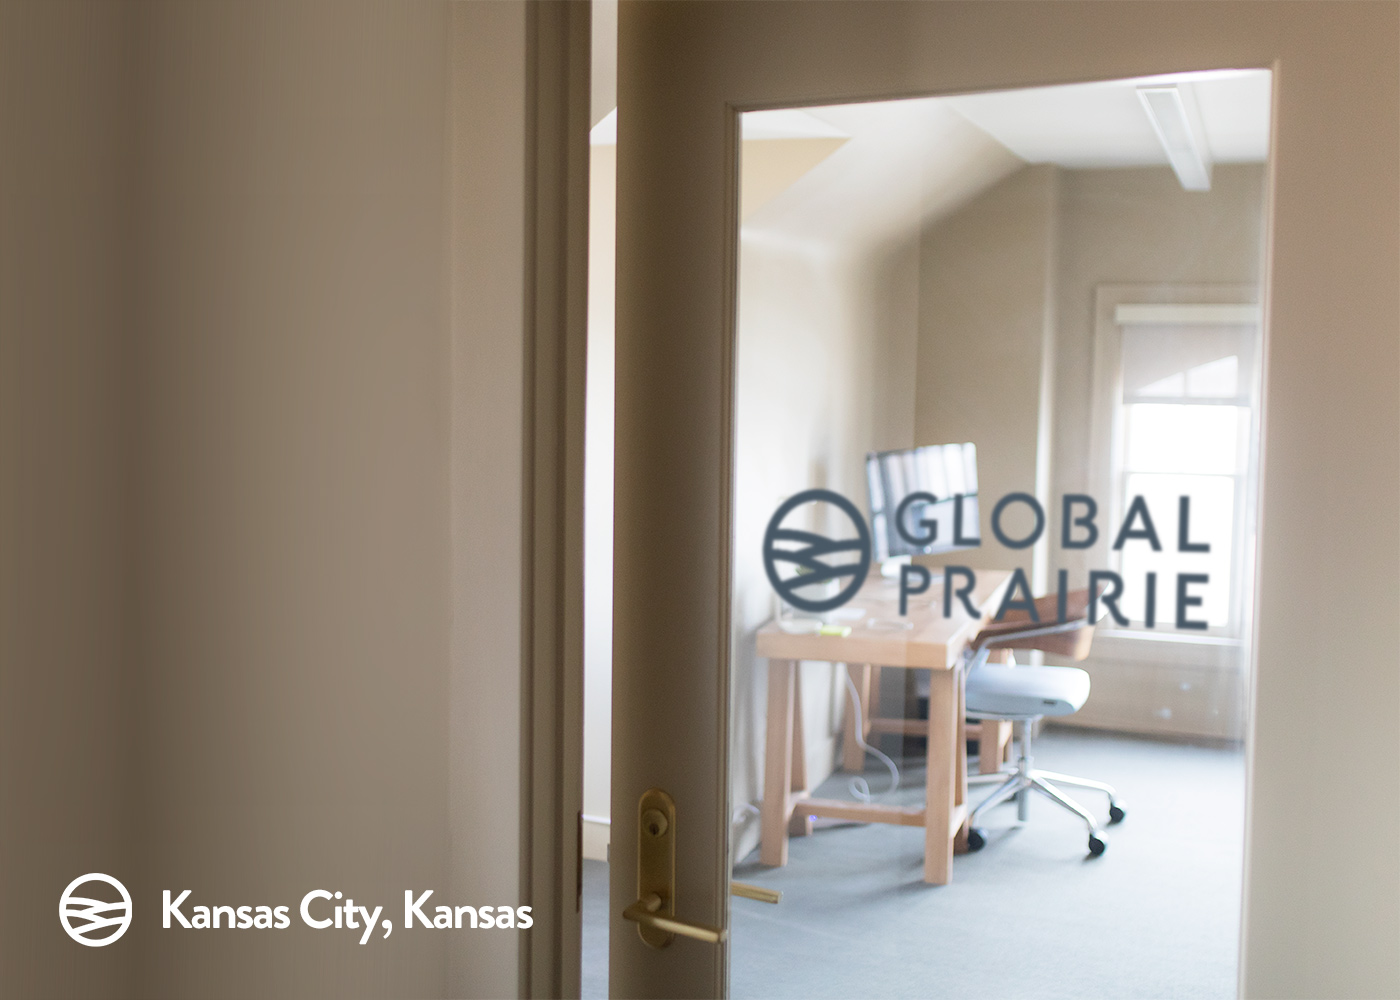 Global-Prairie-KCK-2